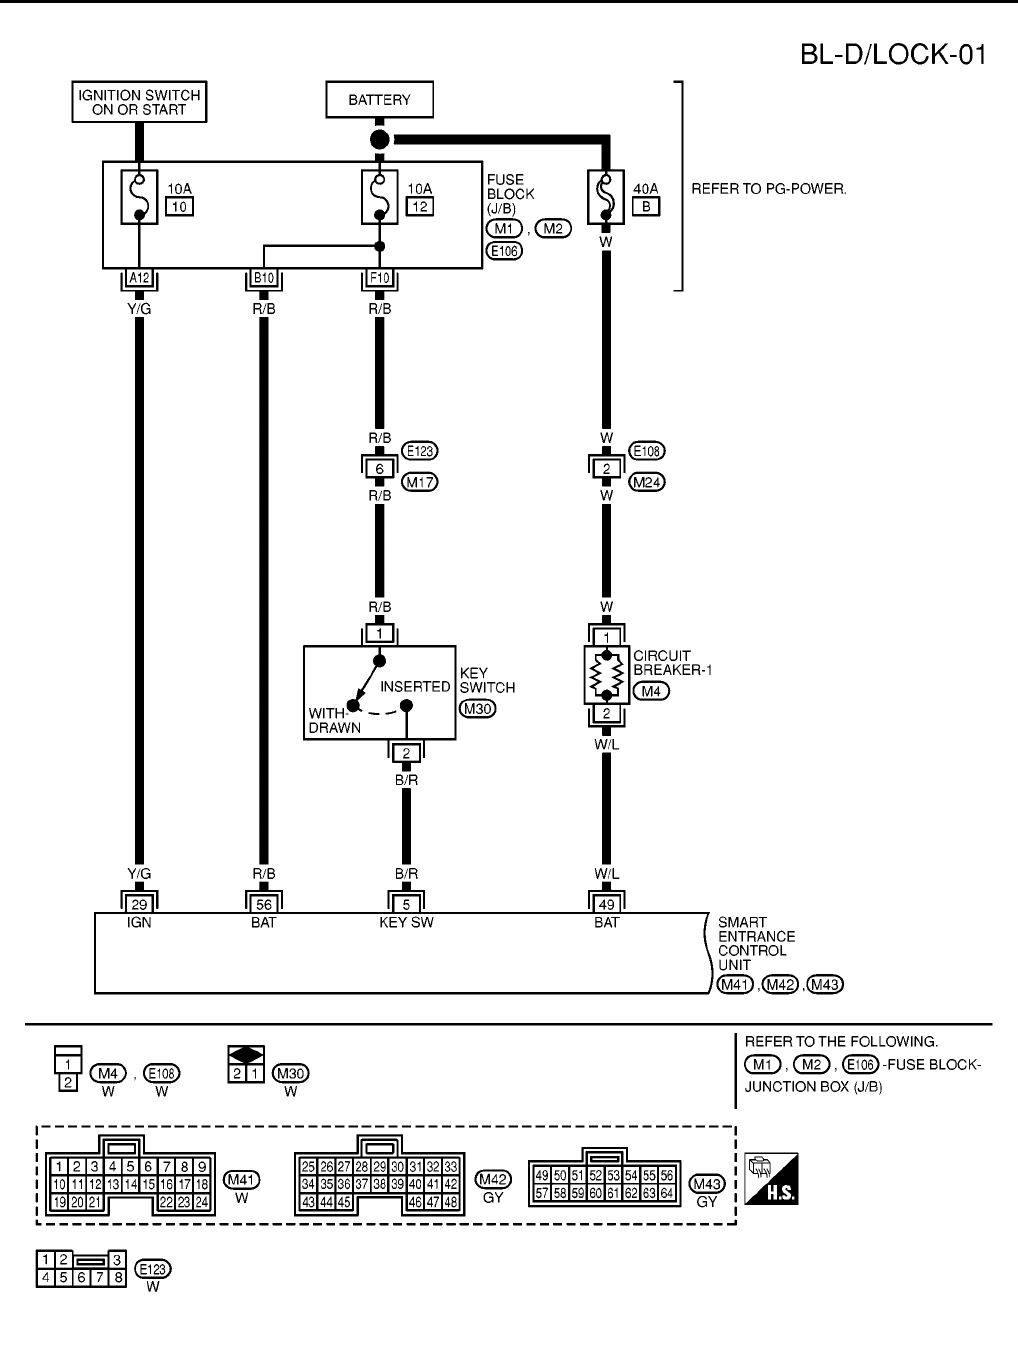 Nissan Terrano Central Locking Wiring Diagram Great Installation Navara D22 Primera Library Rh 27 Yoobi De Juke Pneumatic